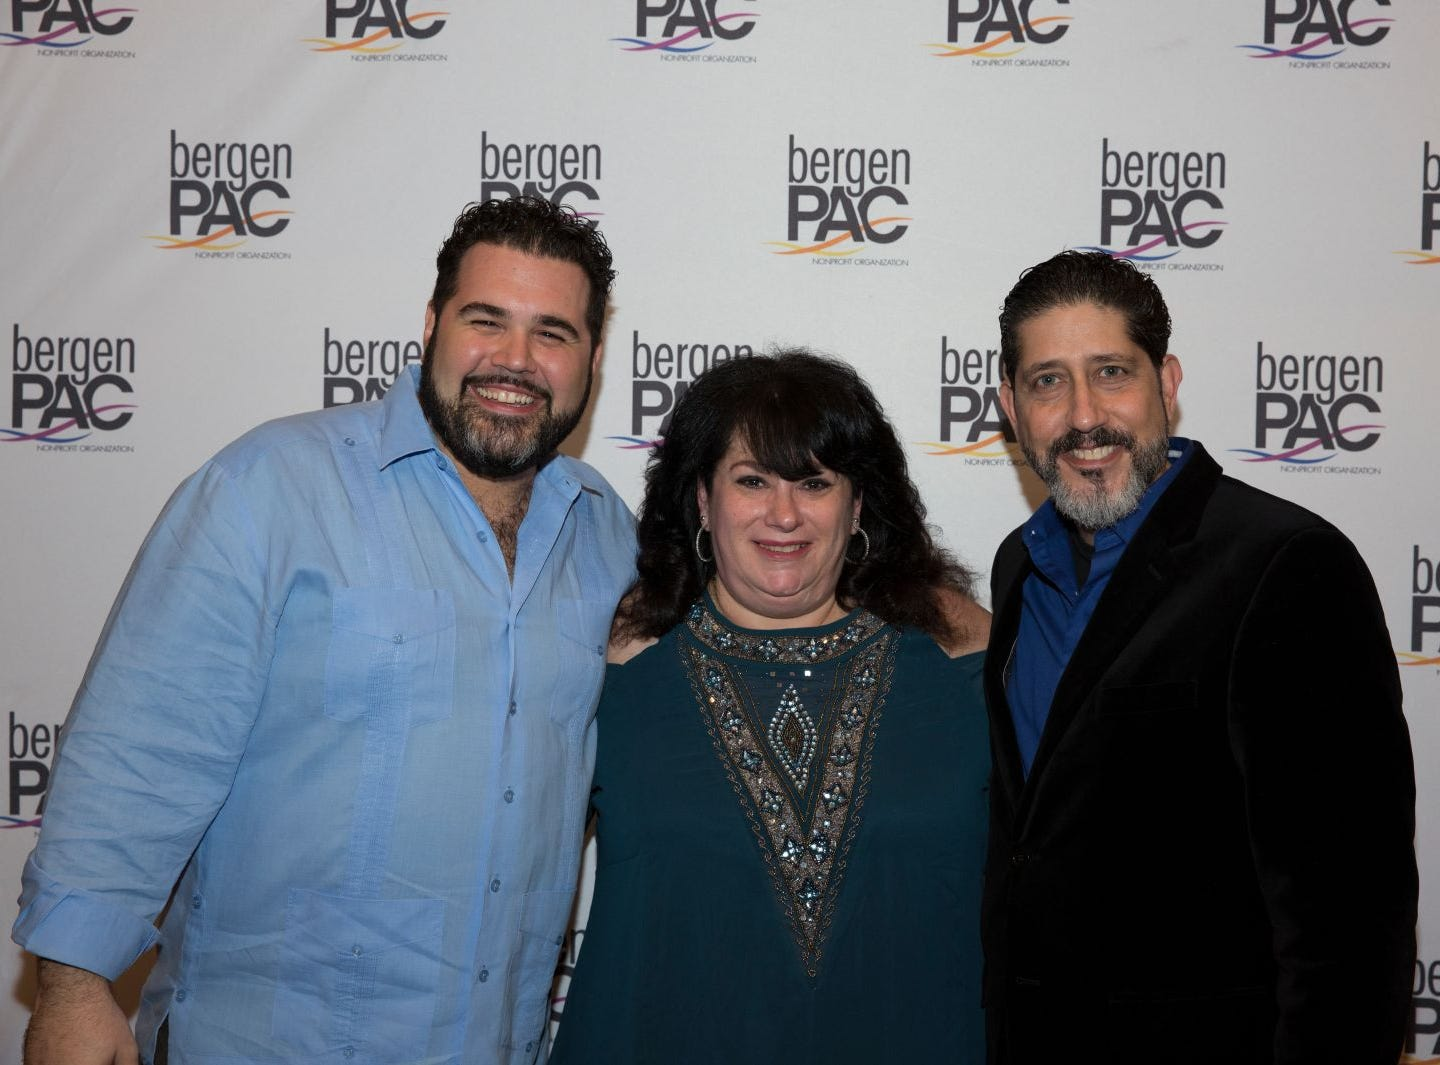 Alex Diaz, Arlene Grunfeld, Mark Quilez. BergenPAC held its annual fall gala featuring John Fogerty in Englewood. This year's honoree was Fernando Garip, from Wilmington Trust and M&T Bank. 11/08/2018